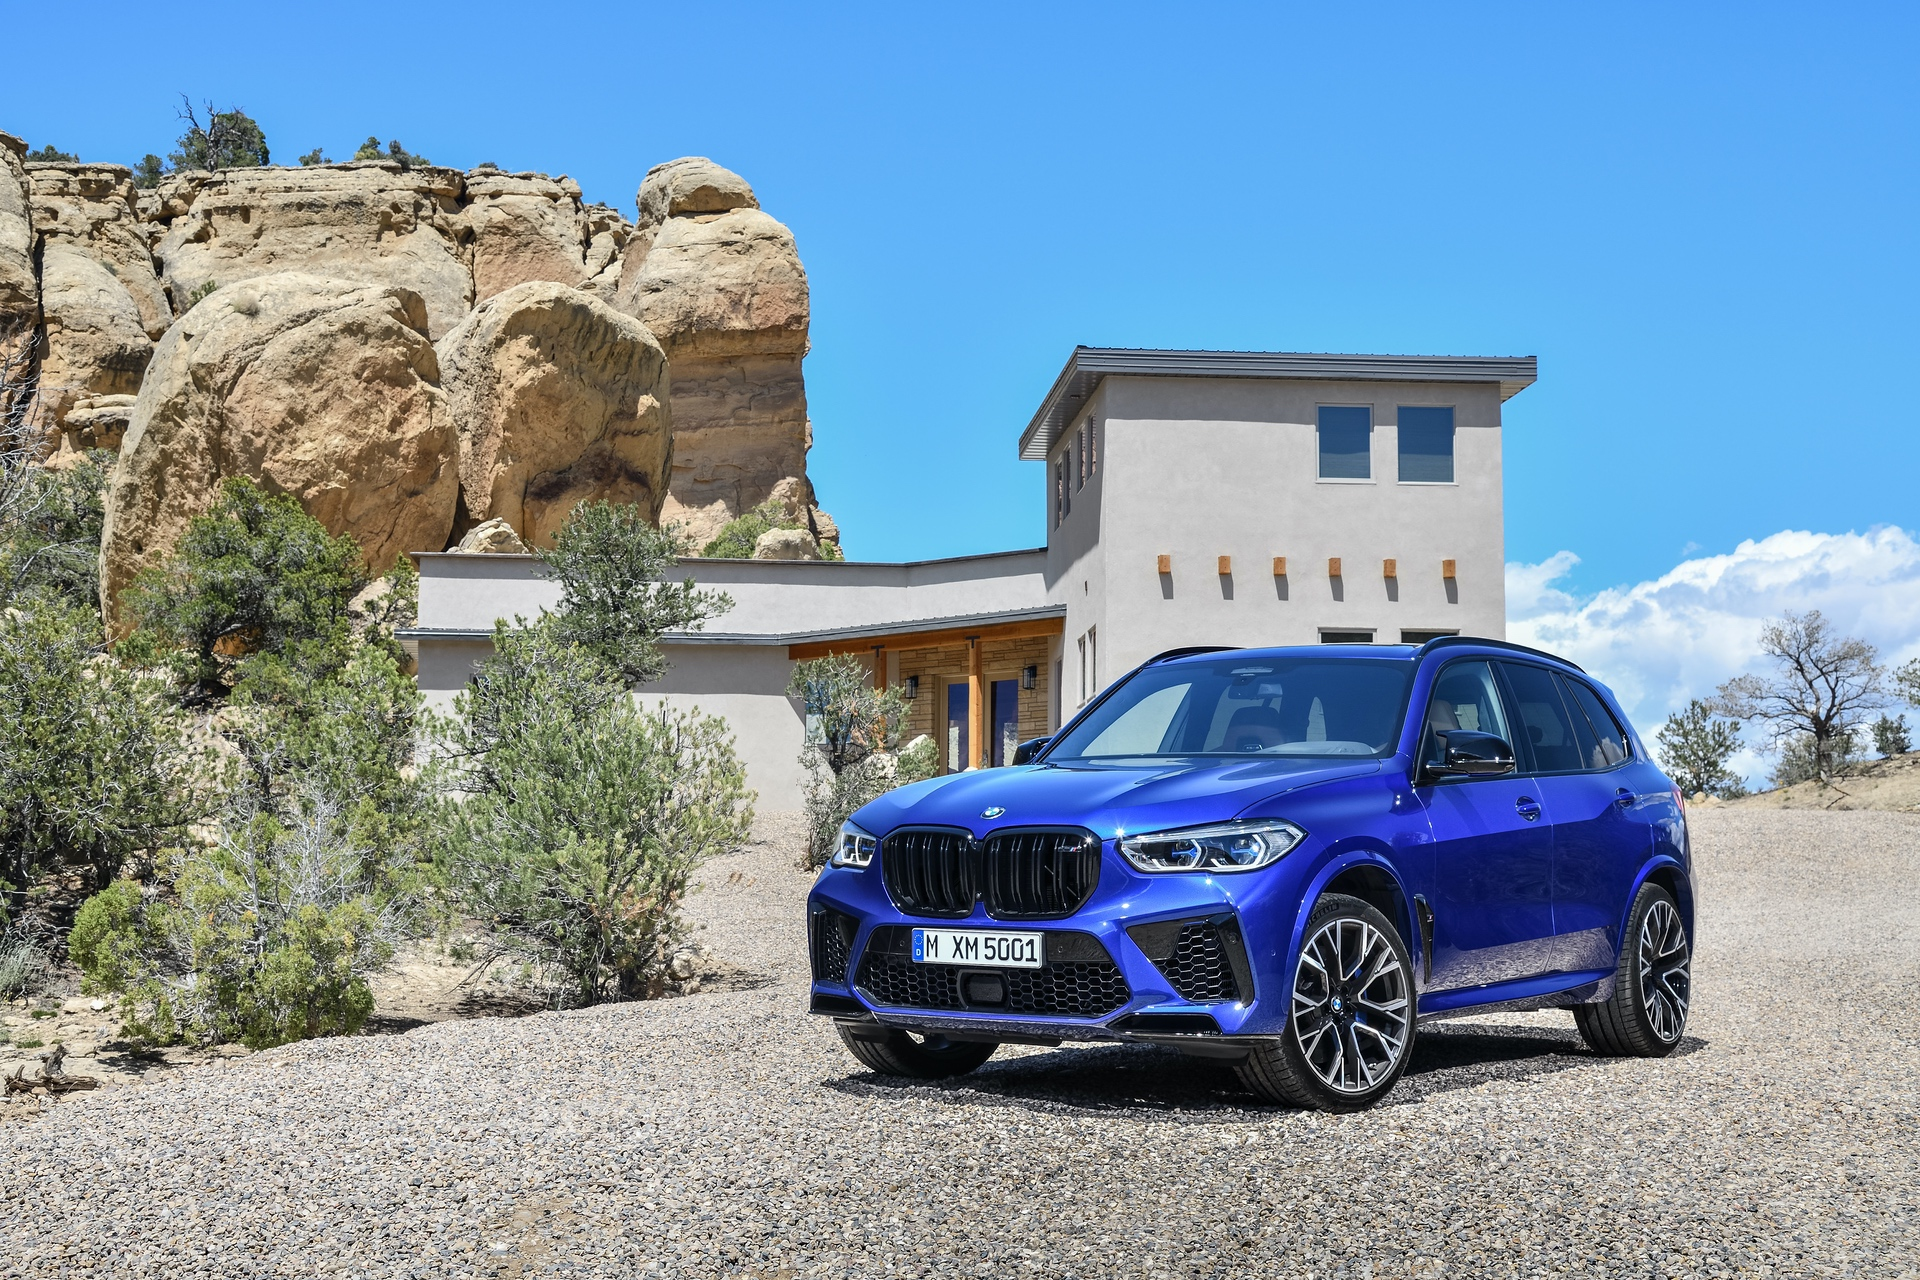 2020 Bmw X5 M The Big Brute Is Finally Here With Lots Of Power